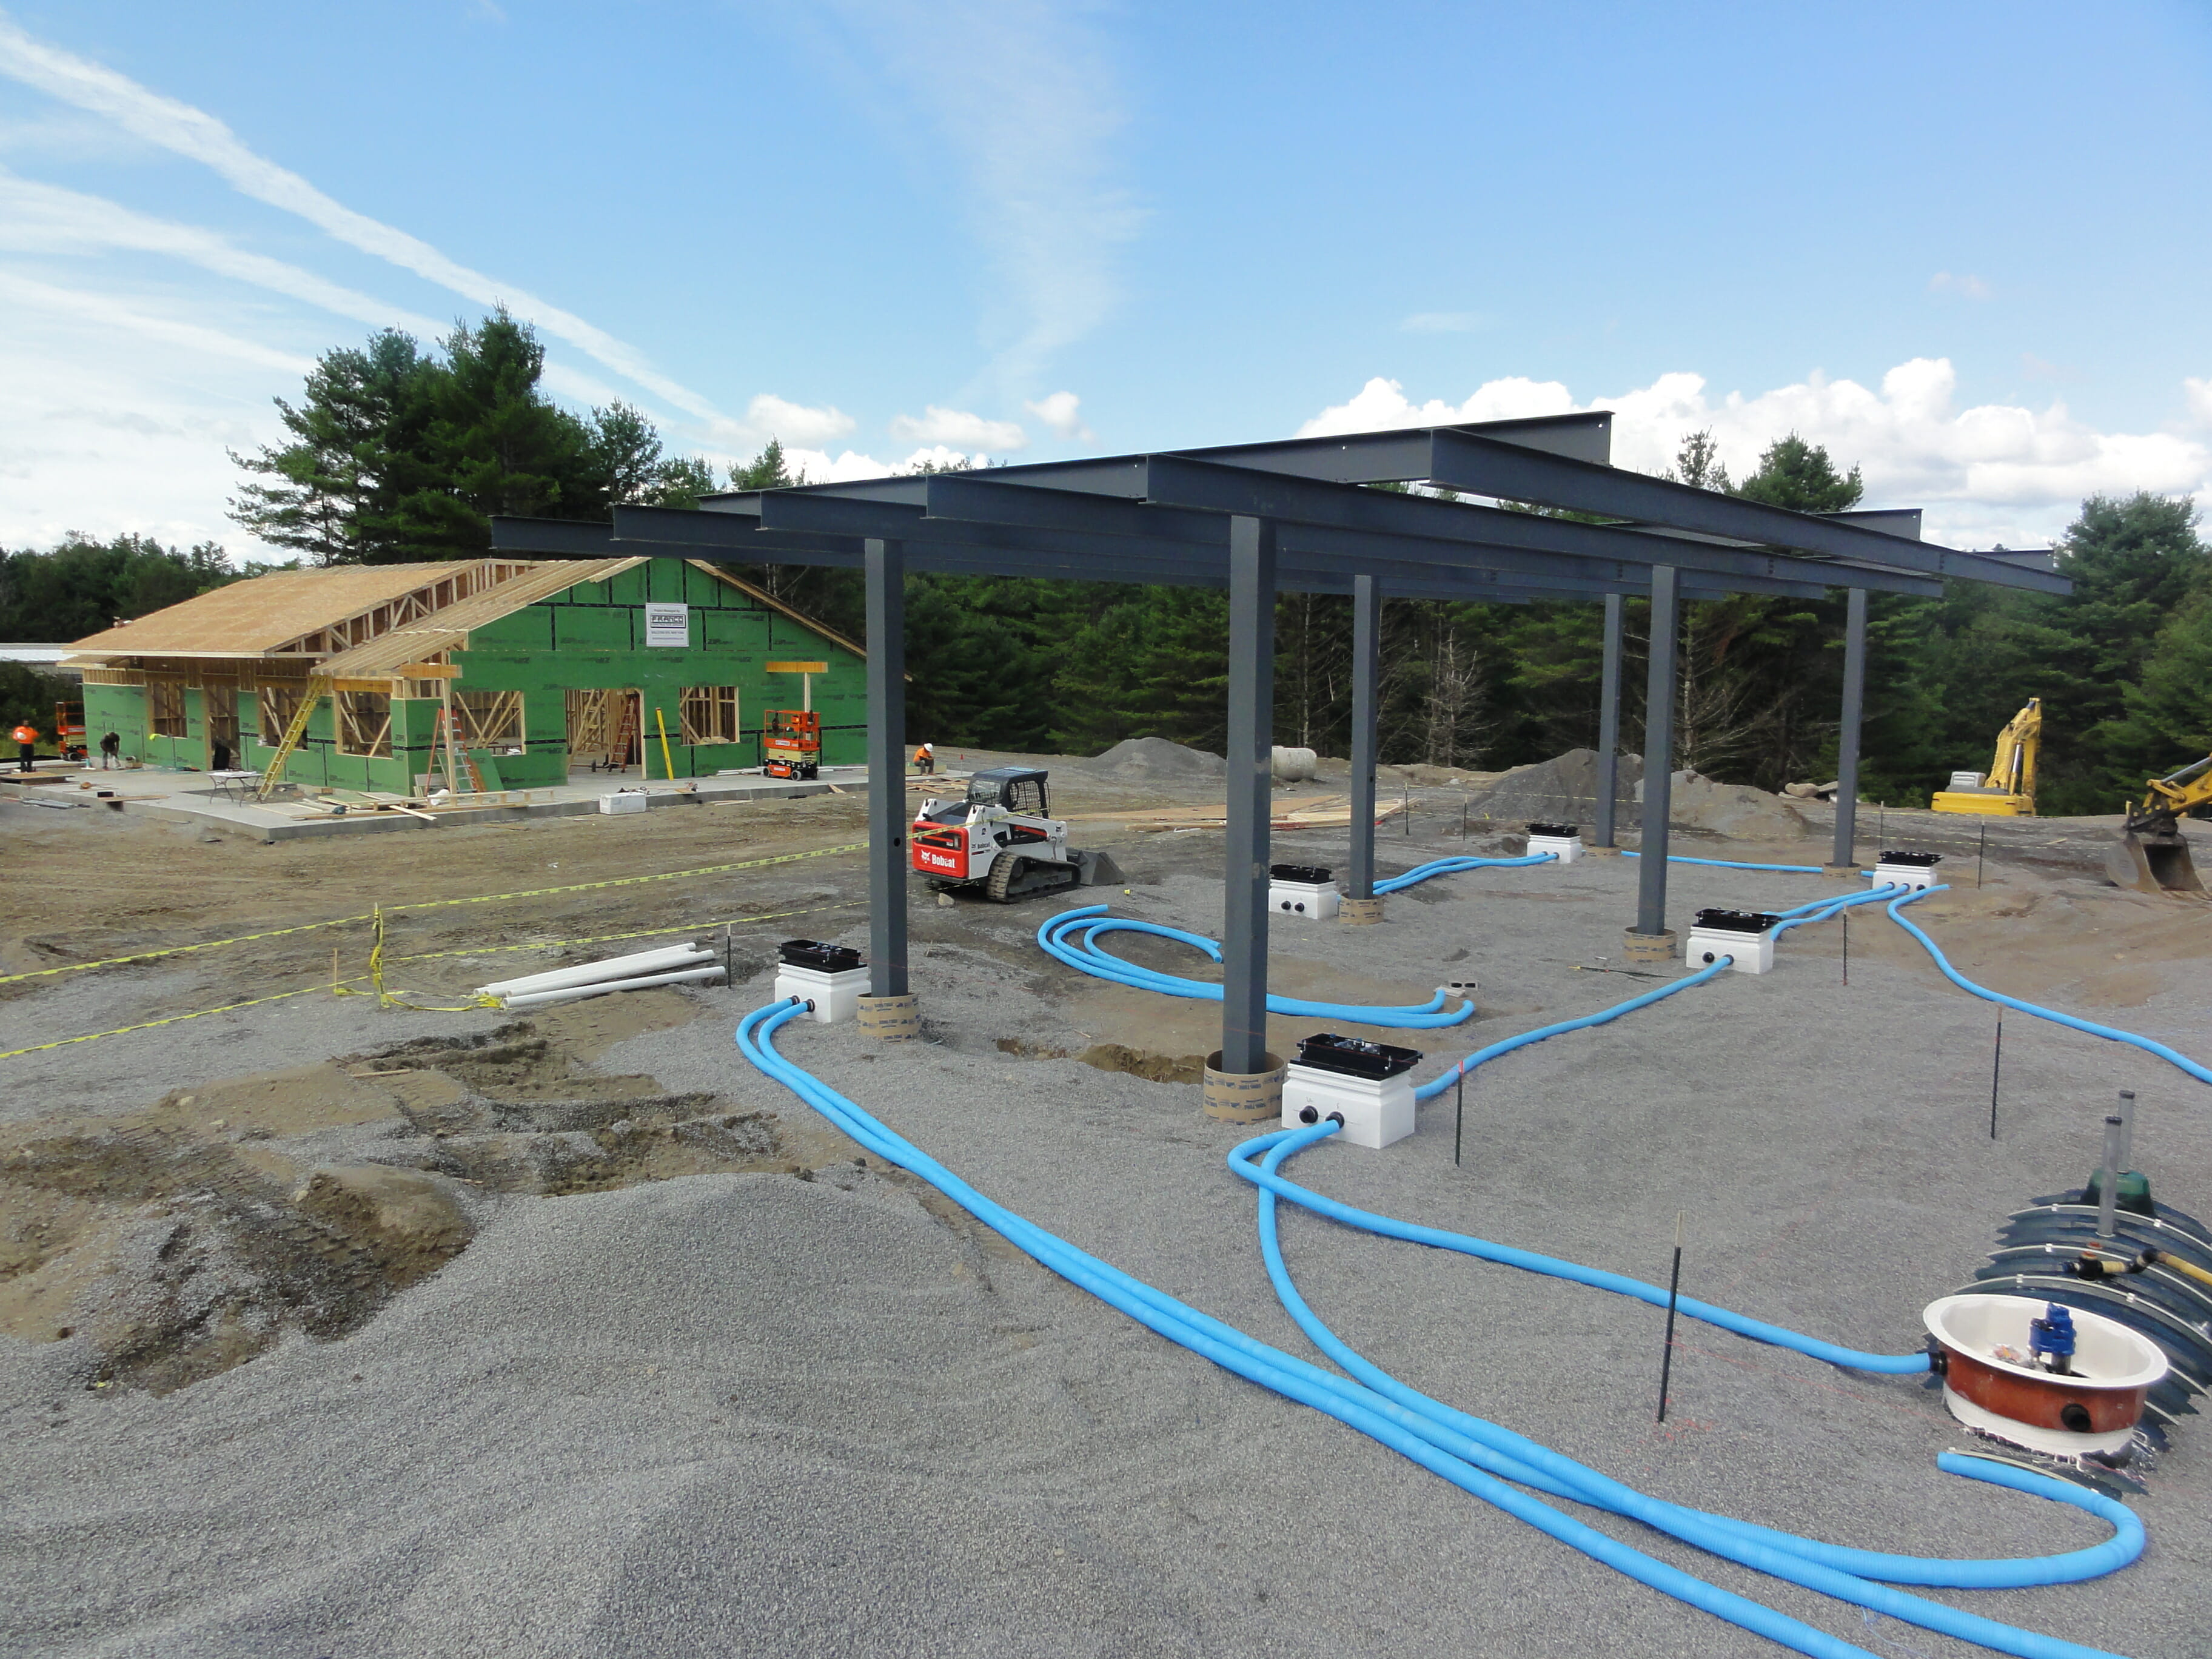 chestertown being built